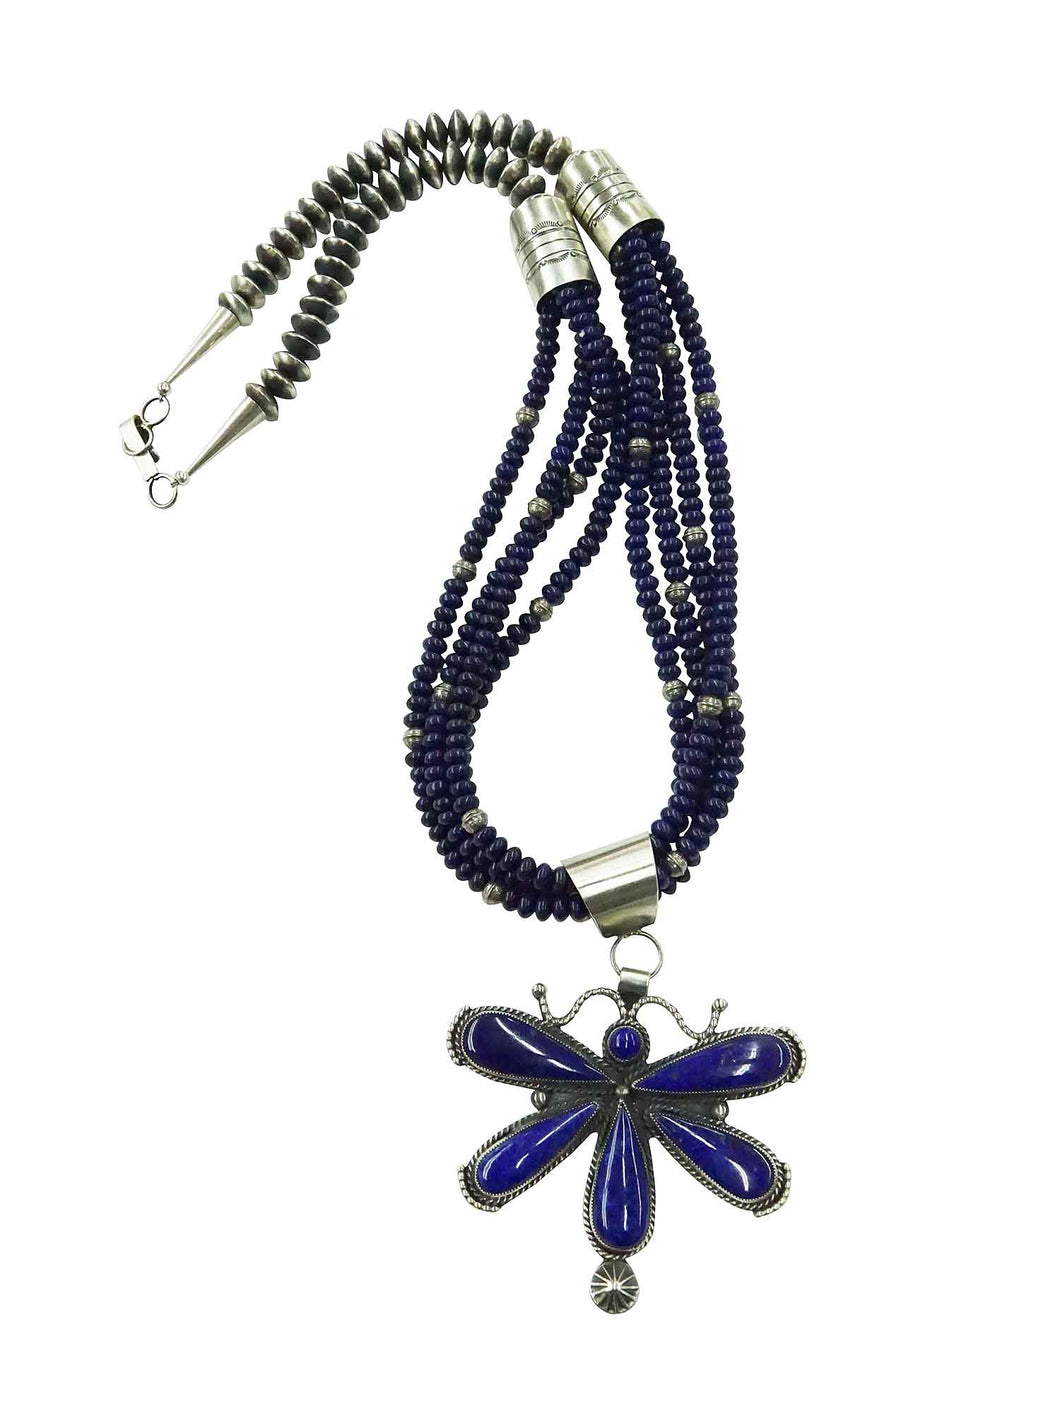 Hemerson Brown, Necklace, Dragonfly, Lapis Lazuli, Navajo Handmade, 30